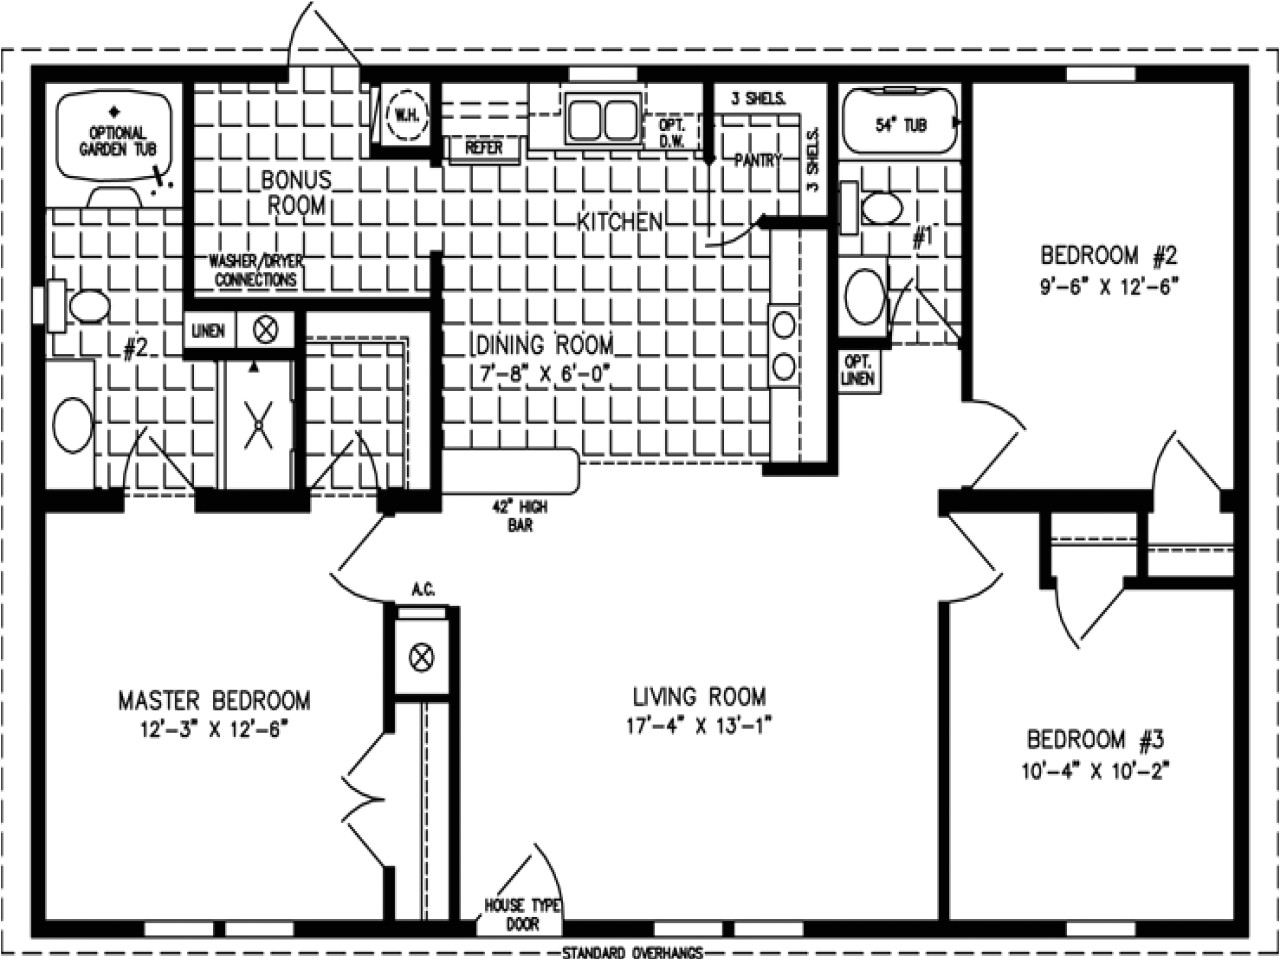 1210ee6b6cf563f8 2 story house floor plans house floor plans under 1000 sq ft